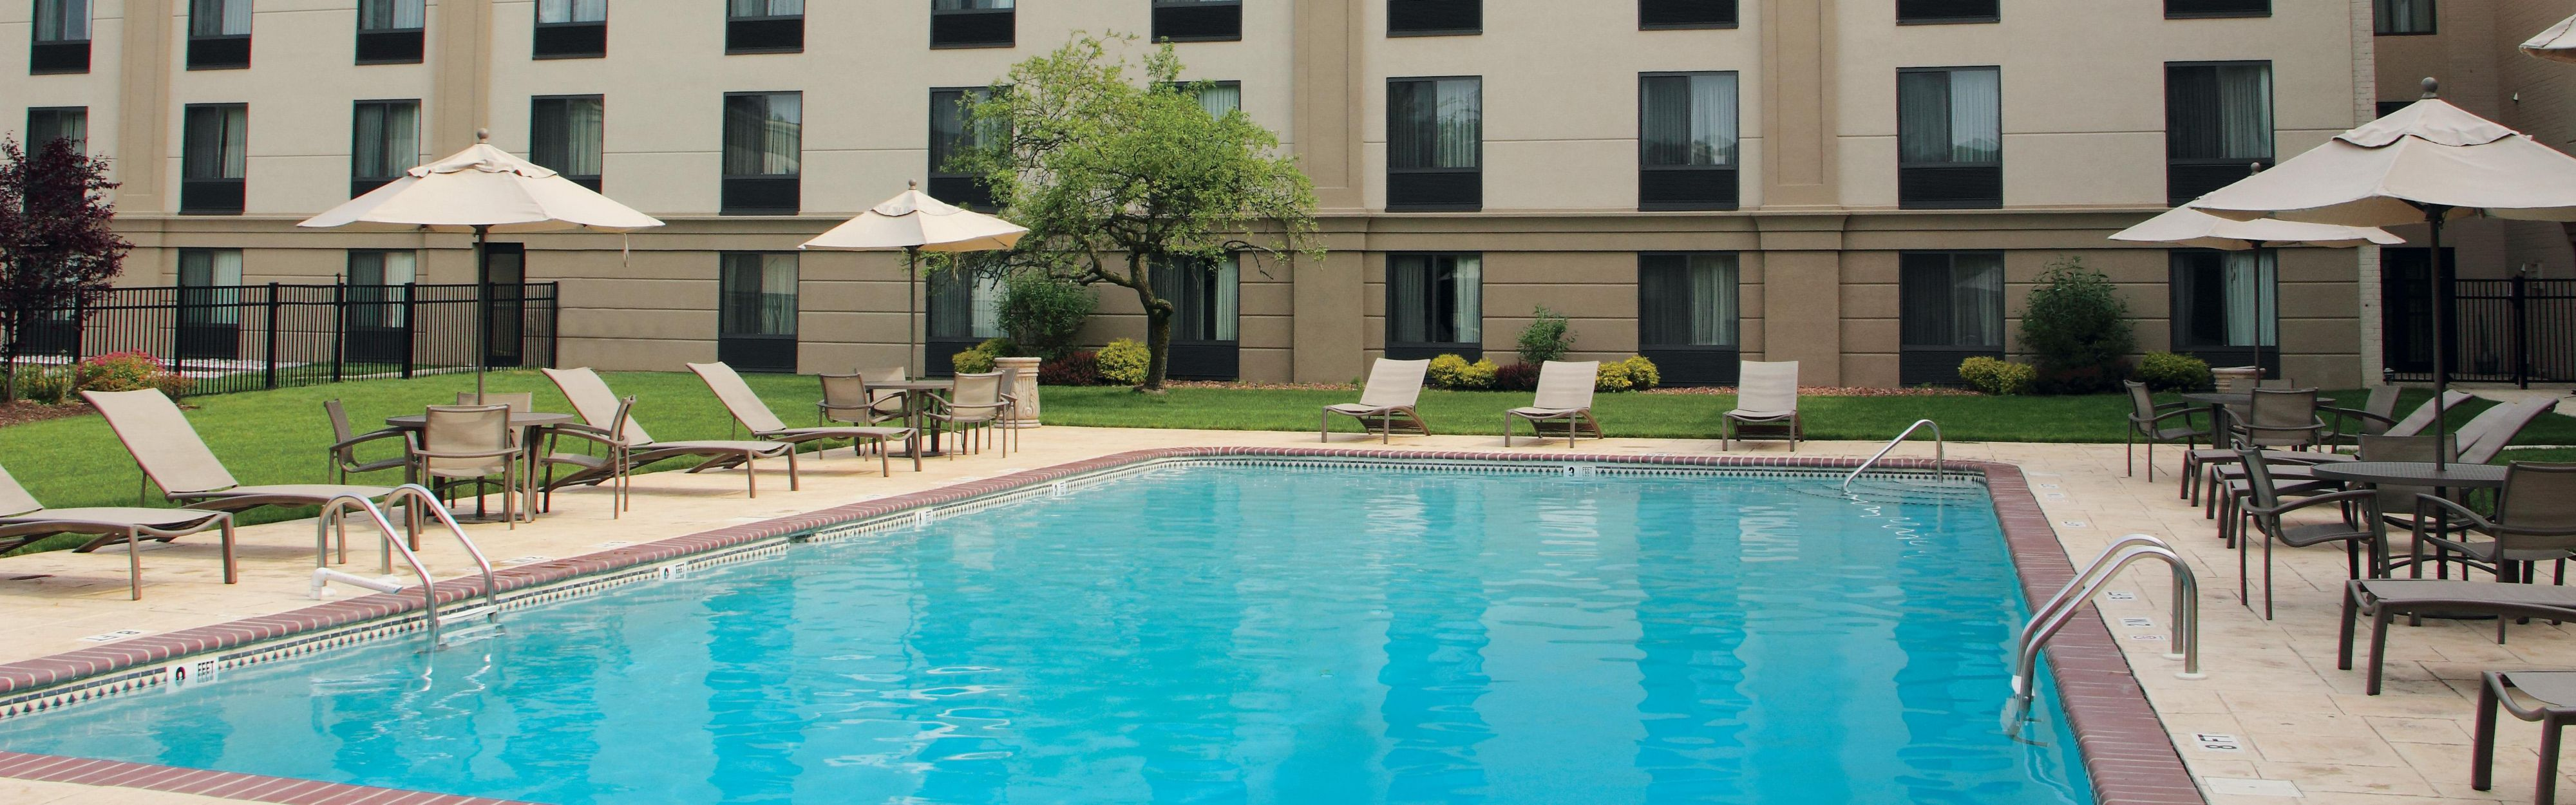 Motels Near East Windsor Nj